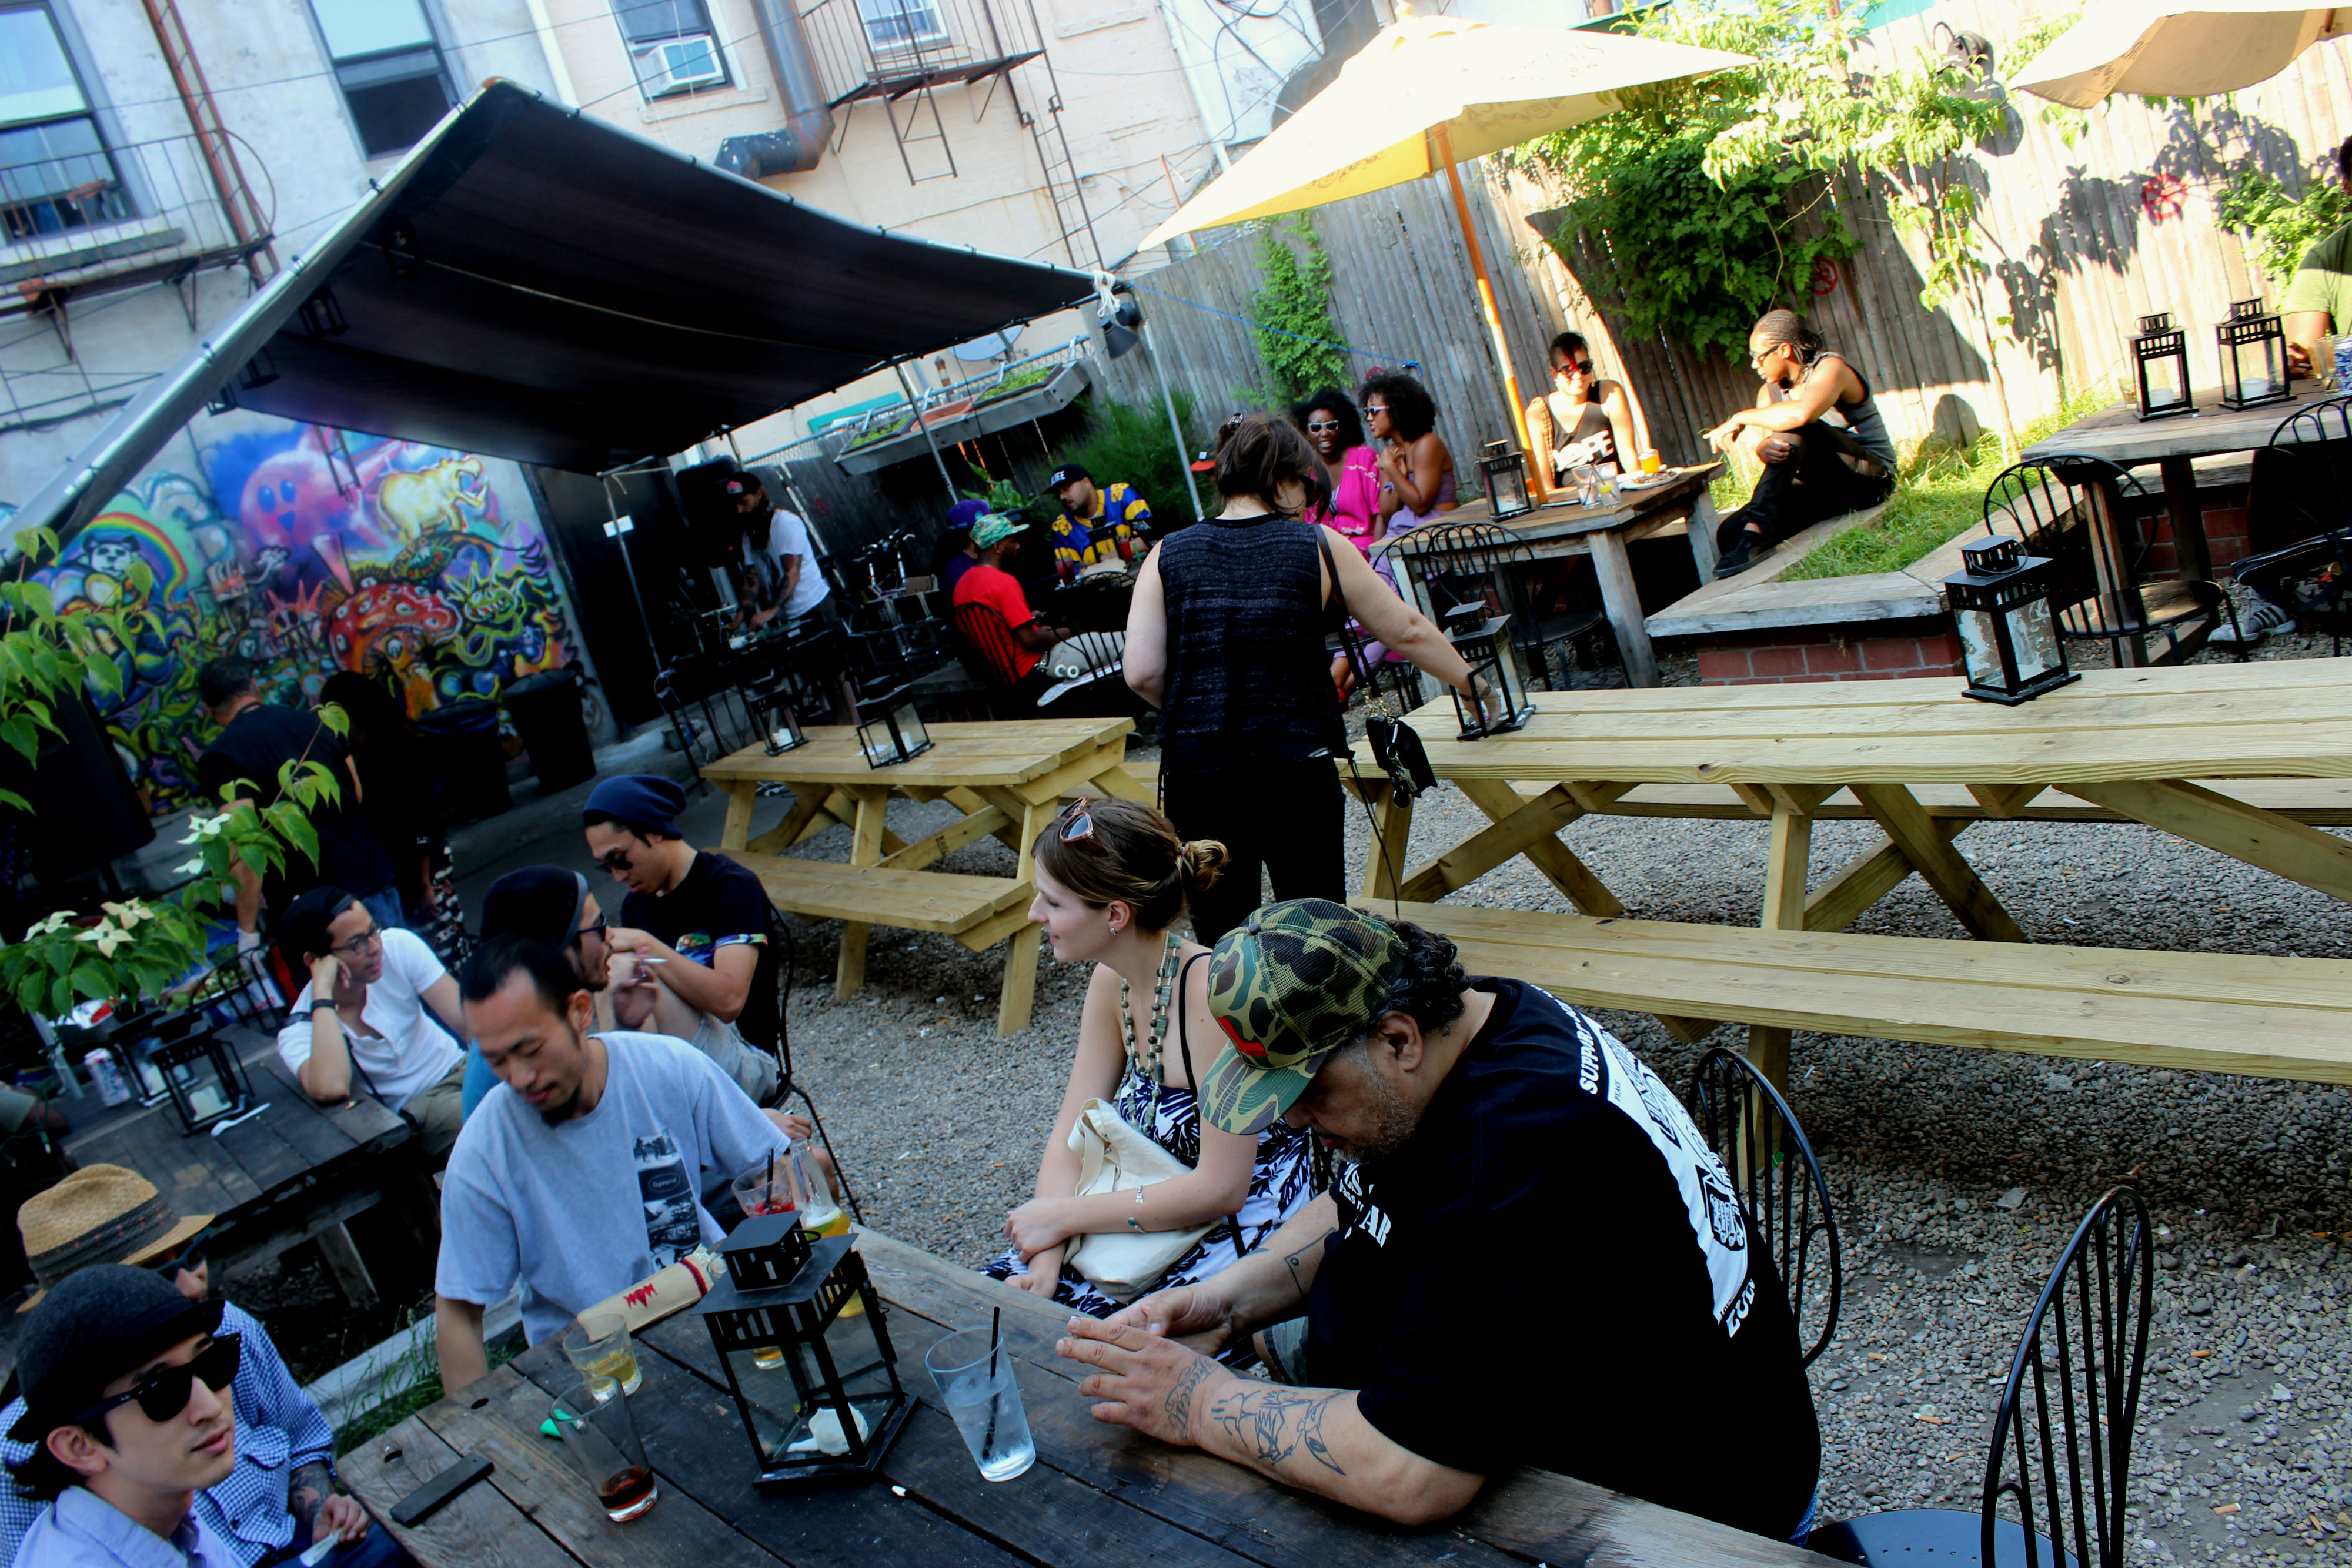 MAP The Best Places to Drink Outdoors in Bed Stuy Bed Stuy